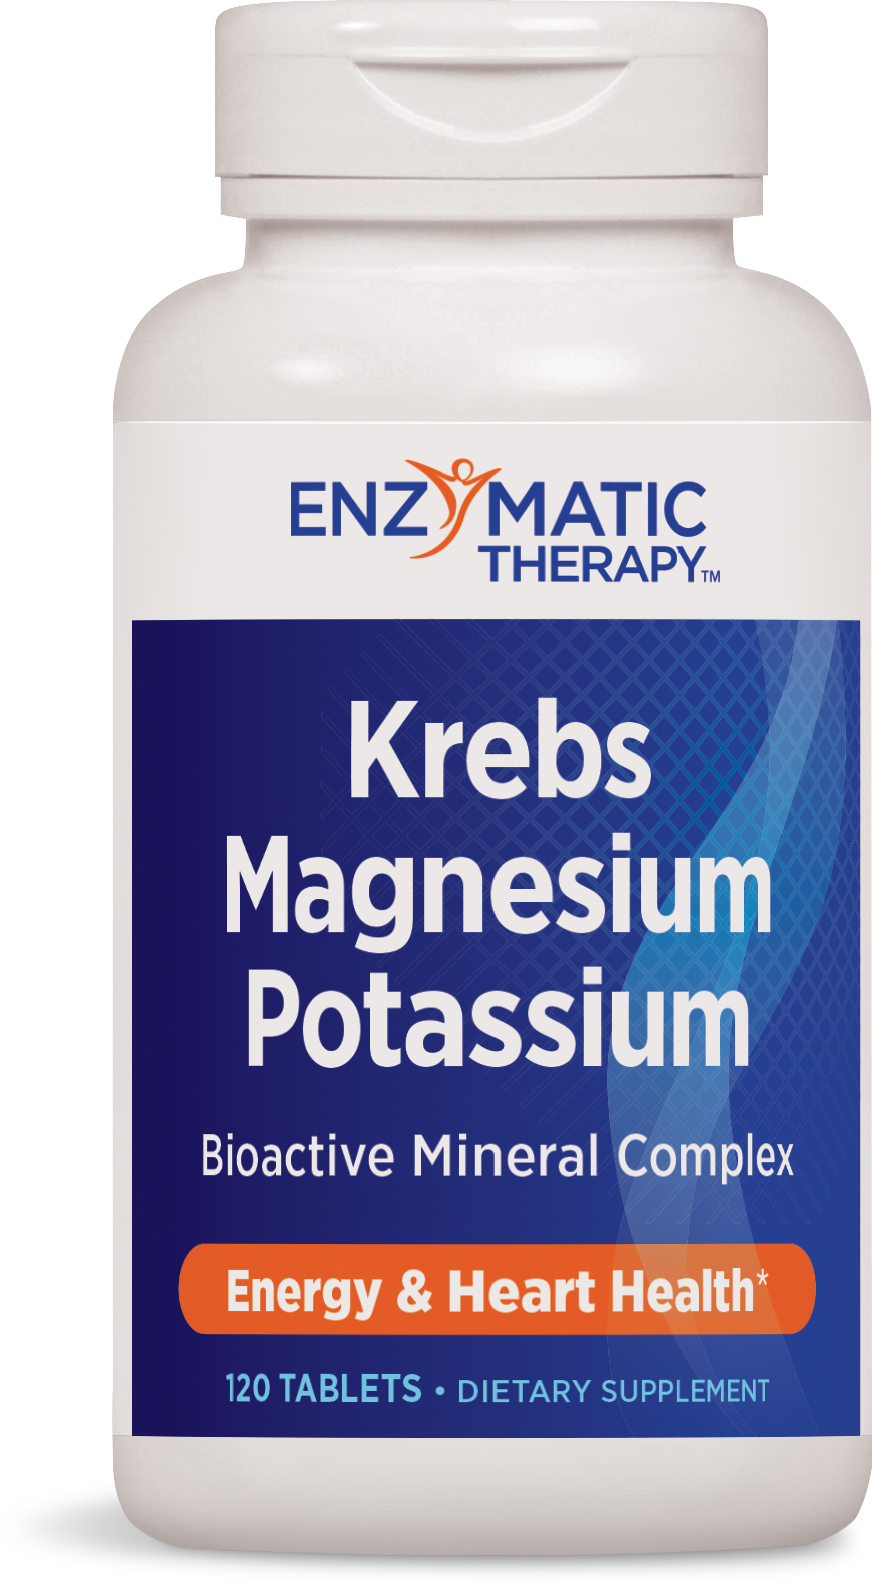 Krebs Magnesium-Potassium Chelates 60 tabs by Enzymatic Therapy